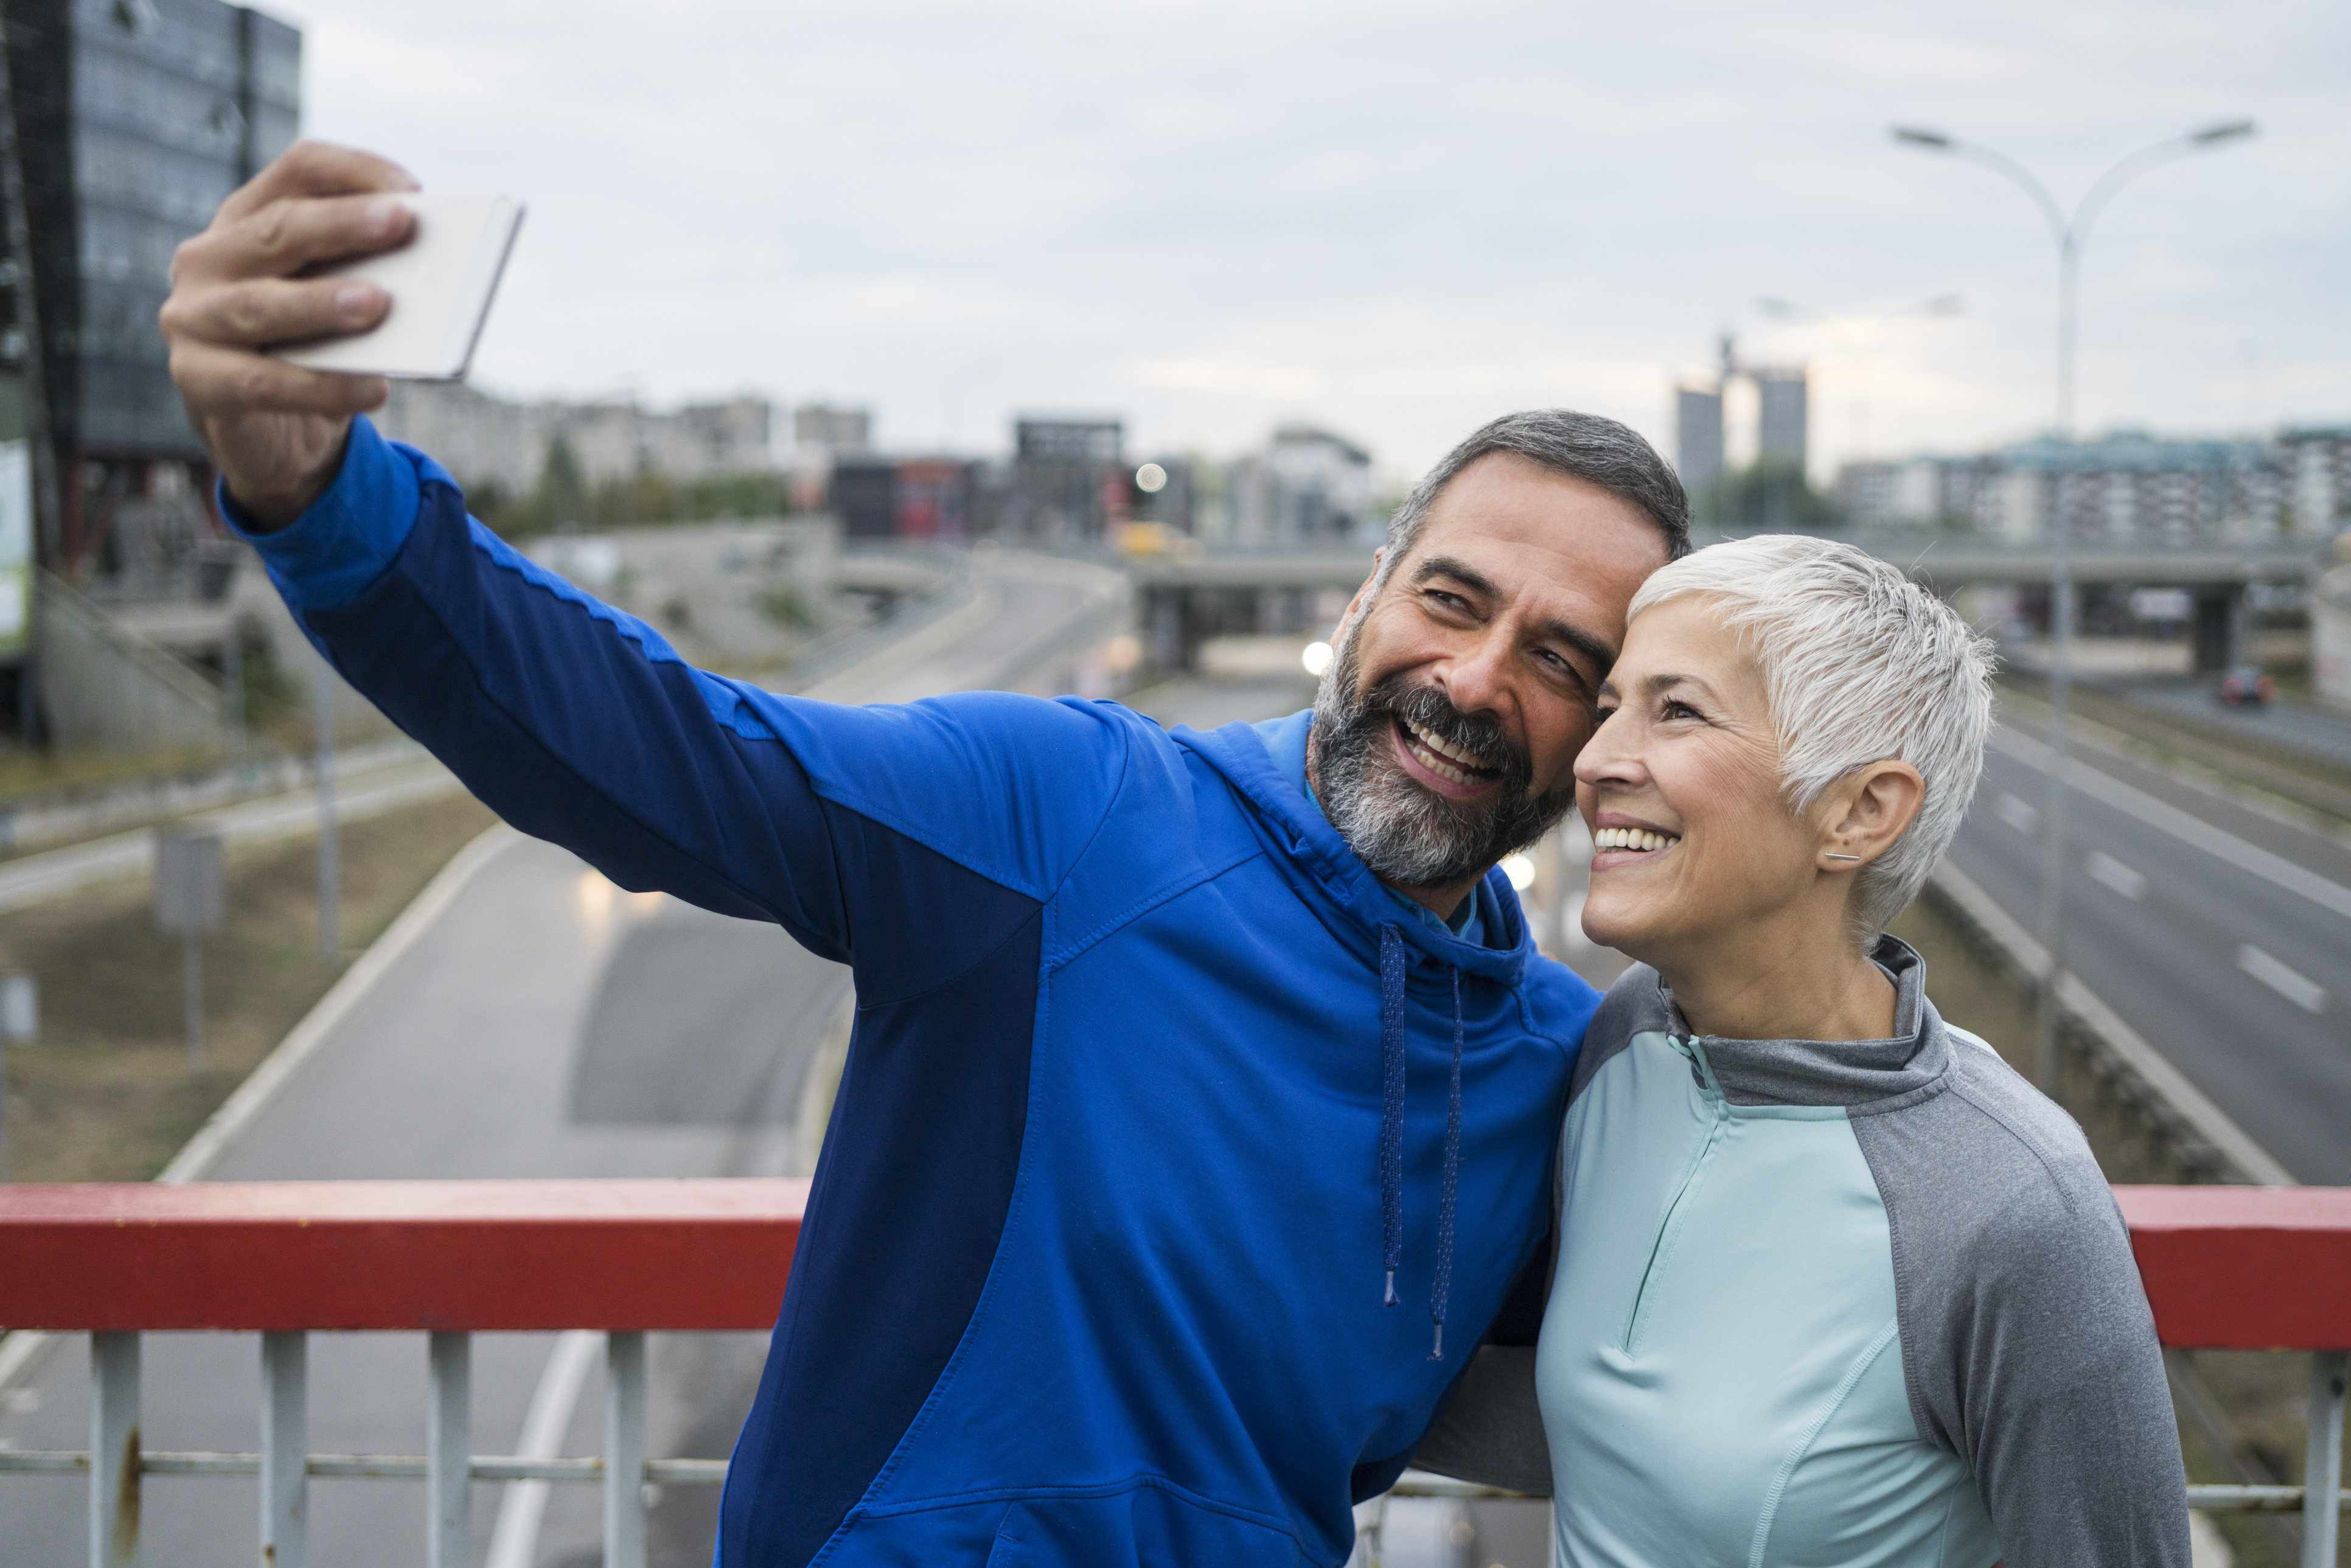 Man and woman taking selfie on bridge